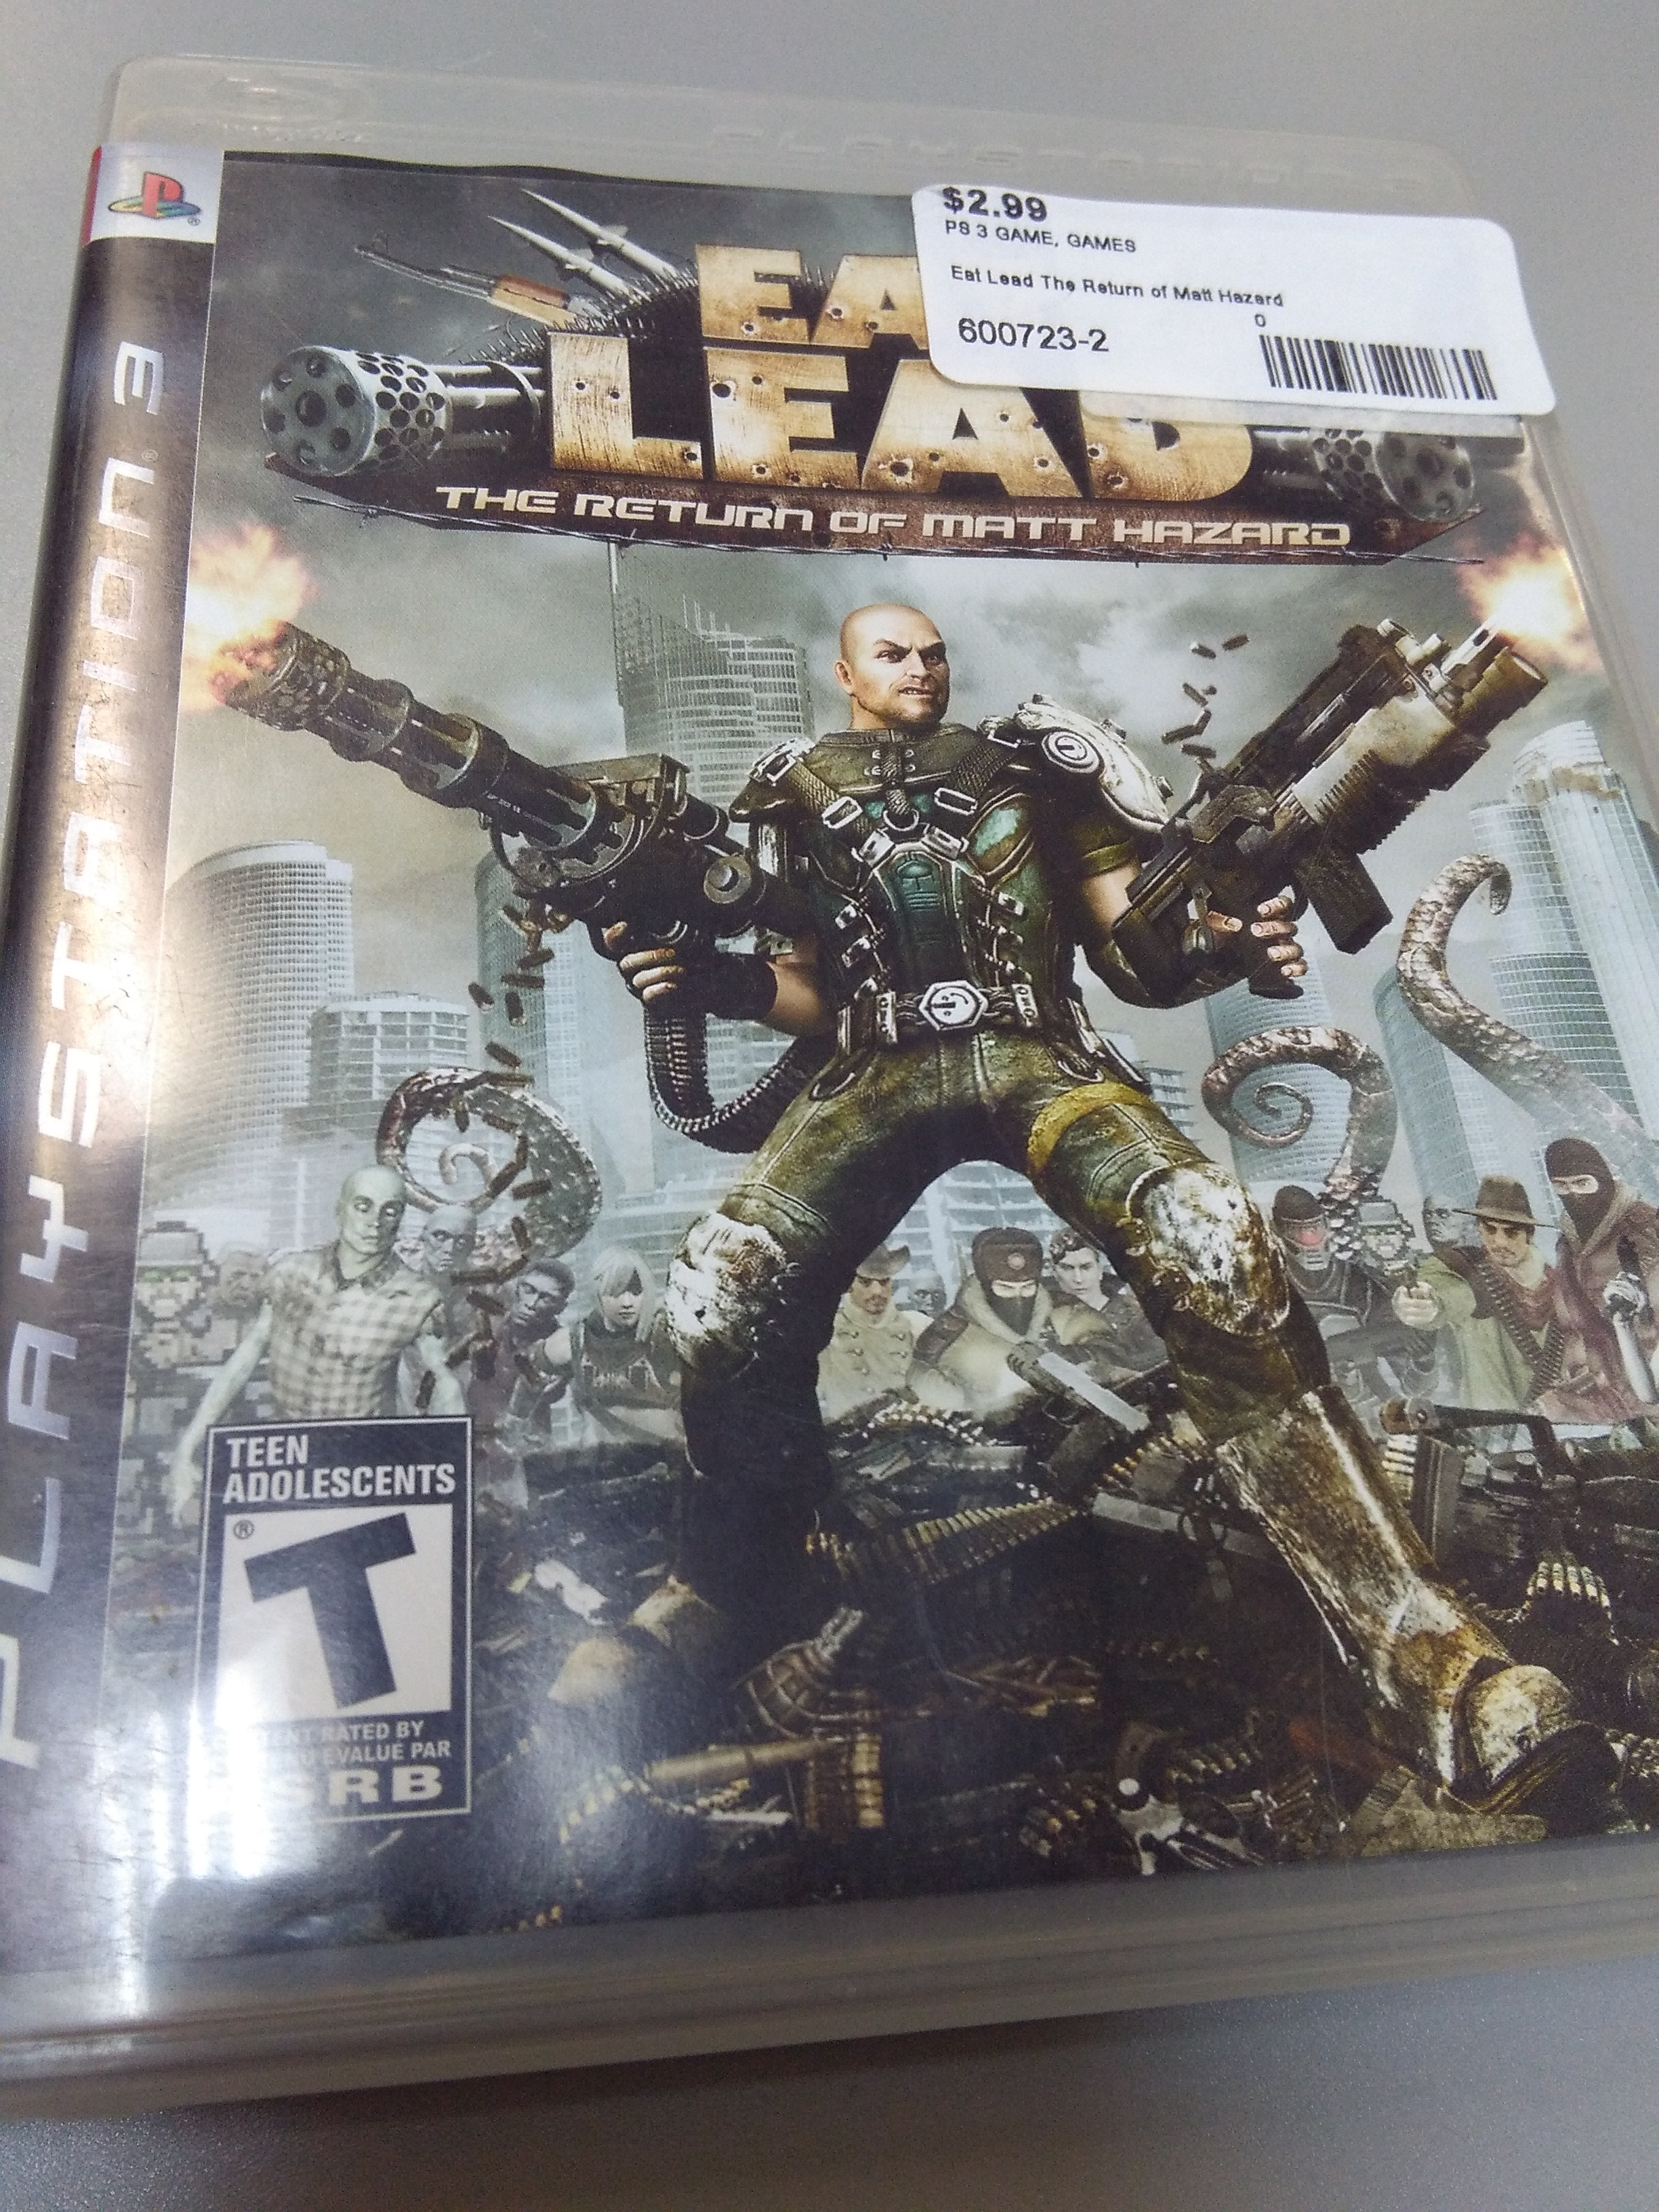 Eat Lead the return of Matt hazard for ps3